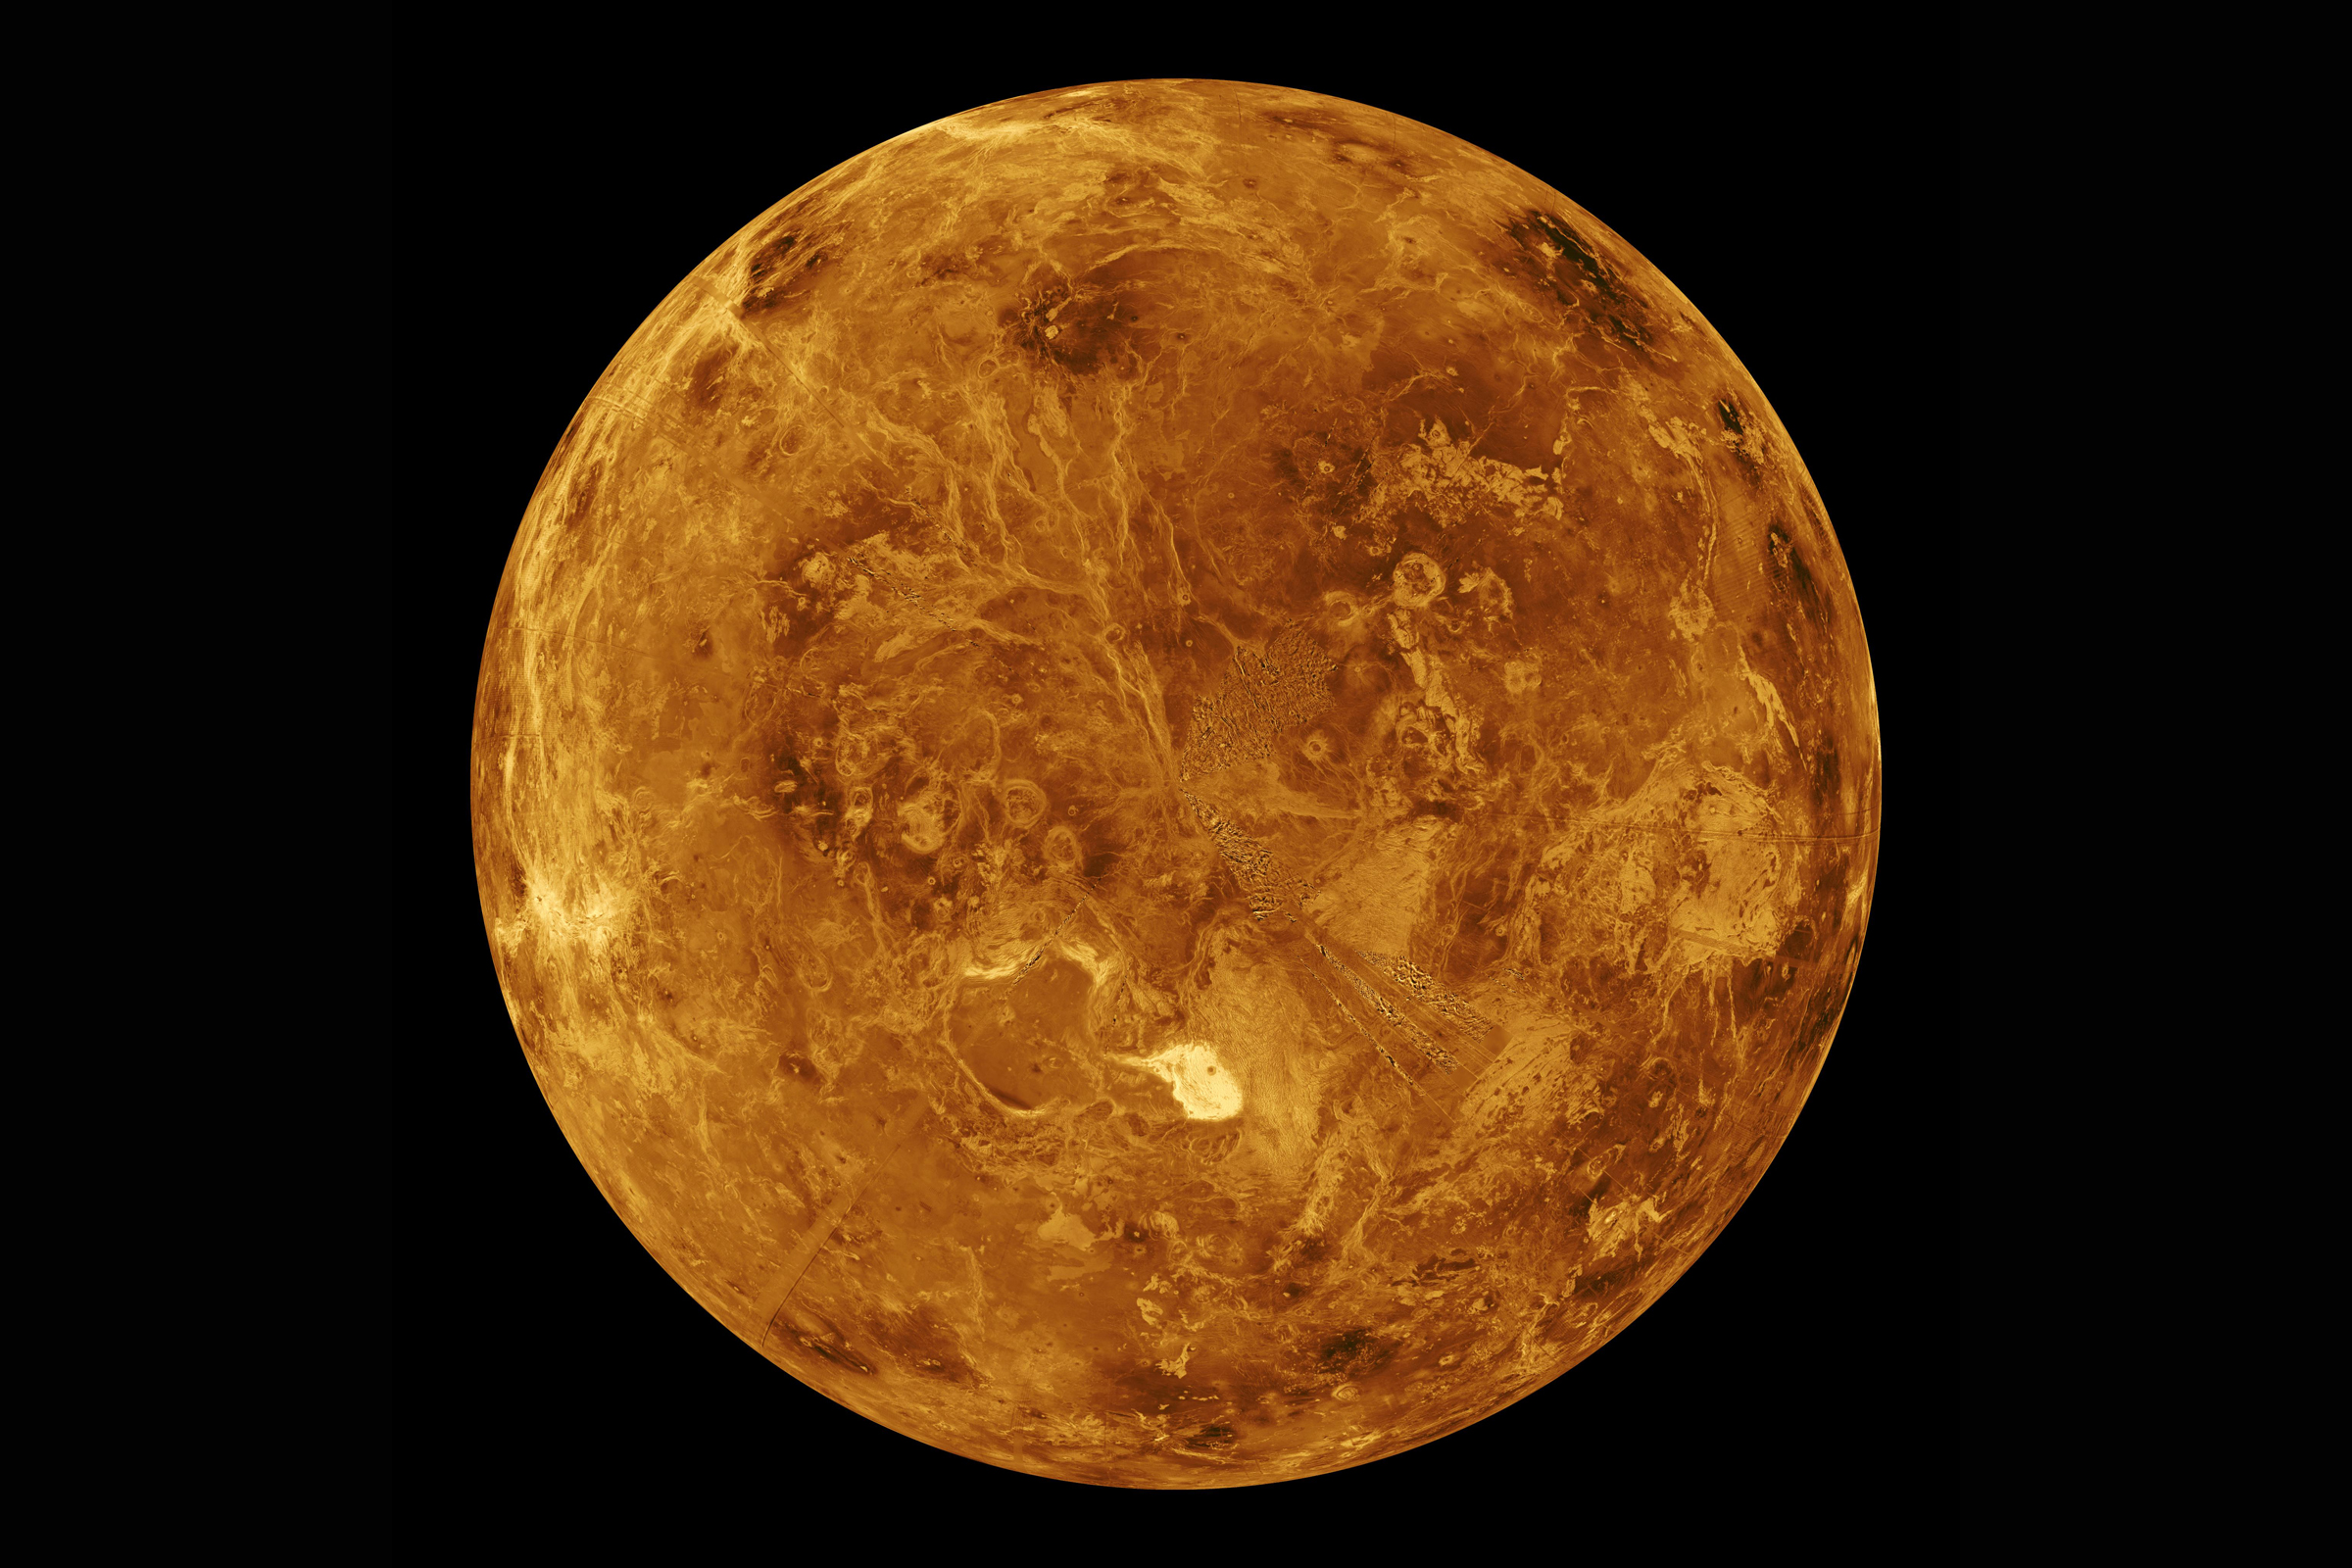 This image shows the surface of the northern hemisphere of Venus as observed by NASA's Magellan radar-mapping spacecraft, which peered through the planet's thick clouds during a mission that ended in 1994. Scientists now suspect Venus may have once harbor